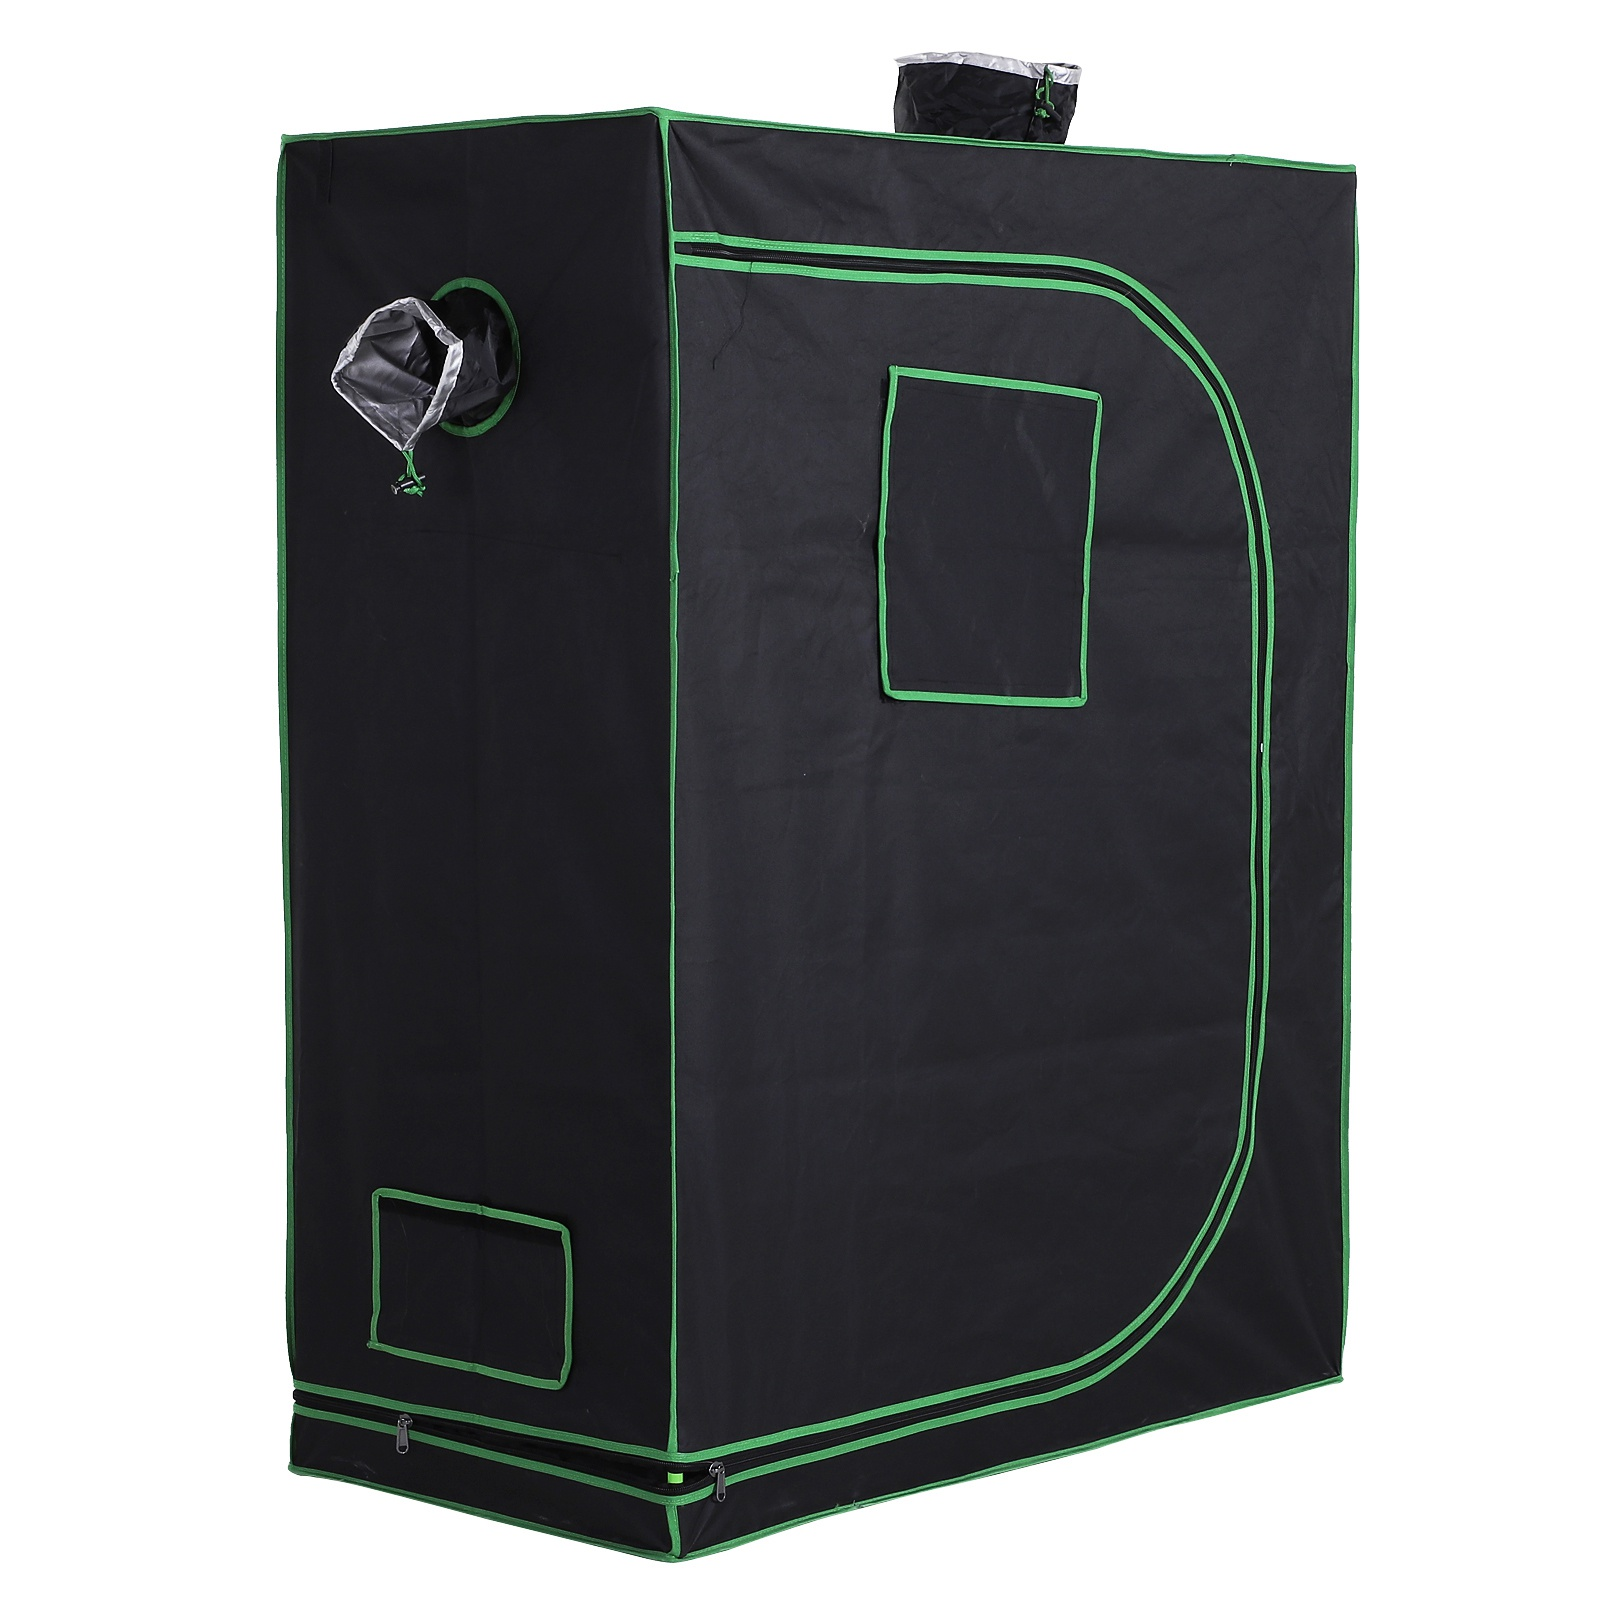 Outsunny Hydroponic Plant Grow Tent Canopy Indoor Reflective Mylar Green Room 600D Oxford 120L x60W x150Hcm Silver